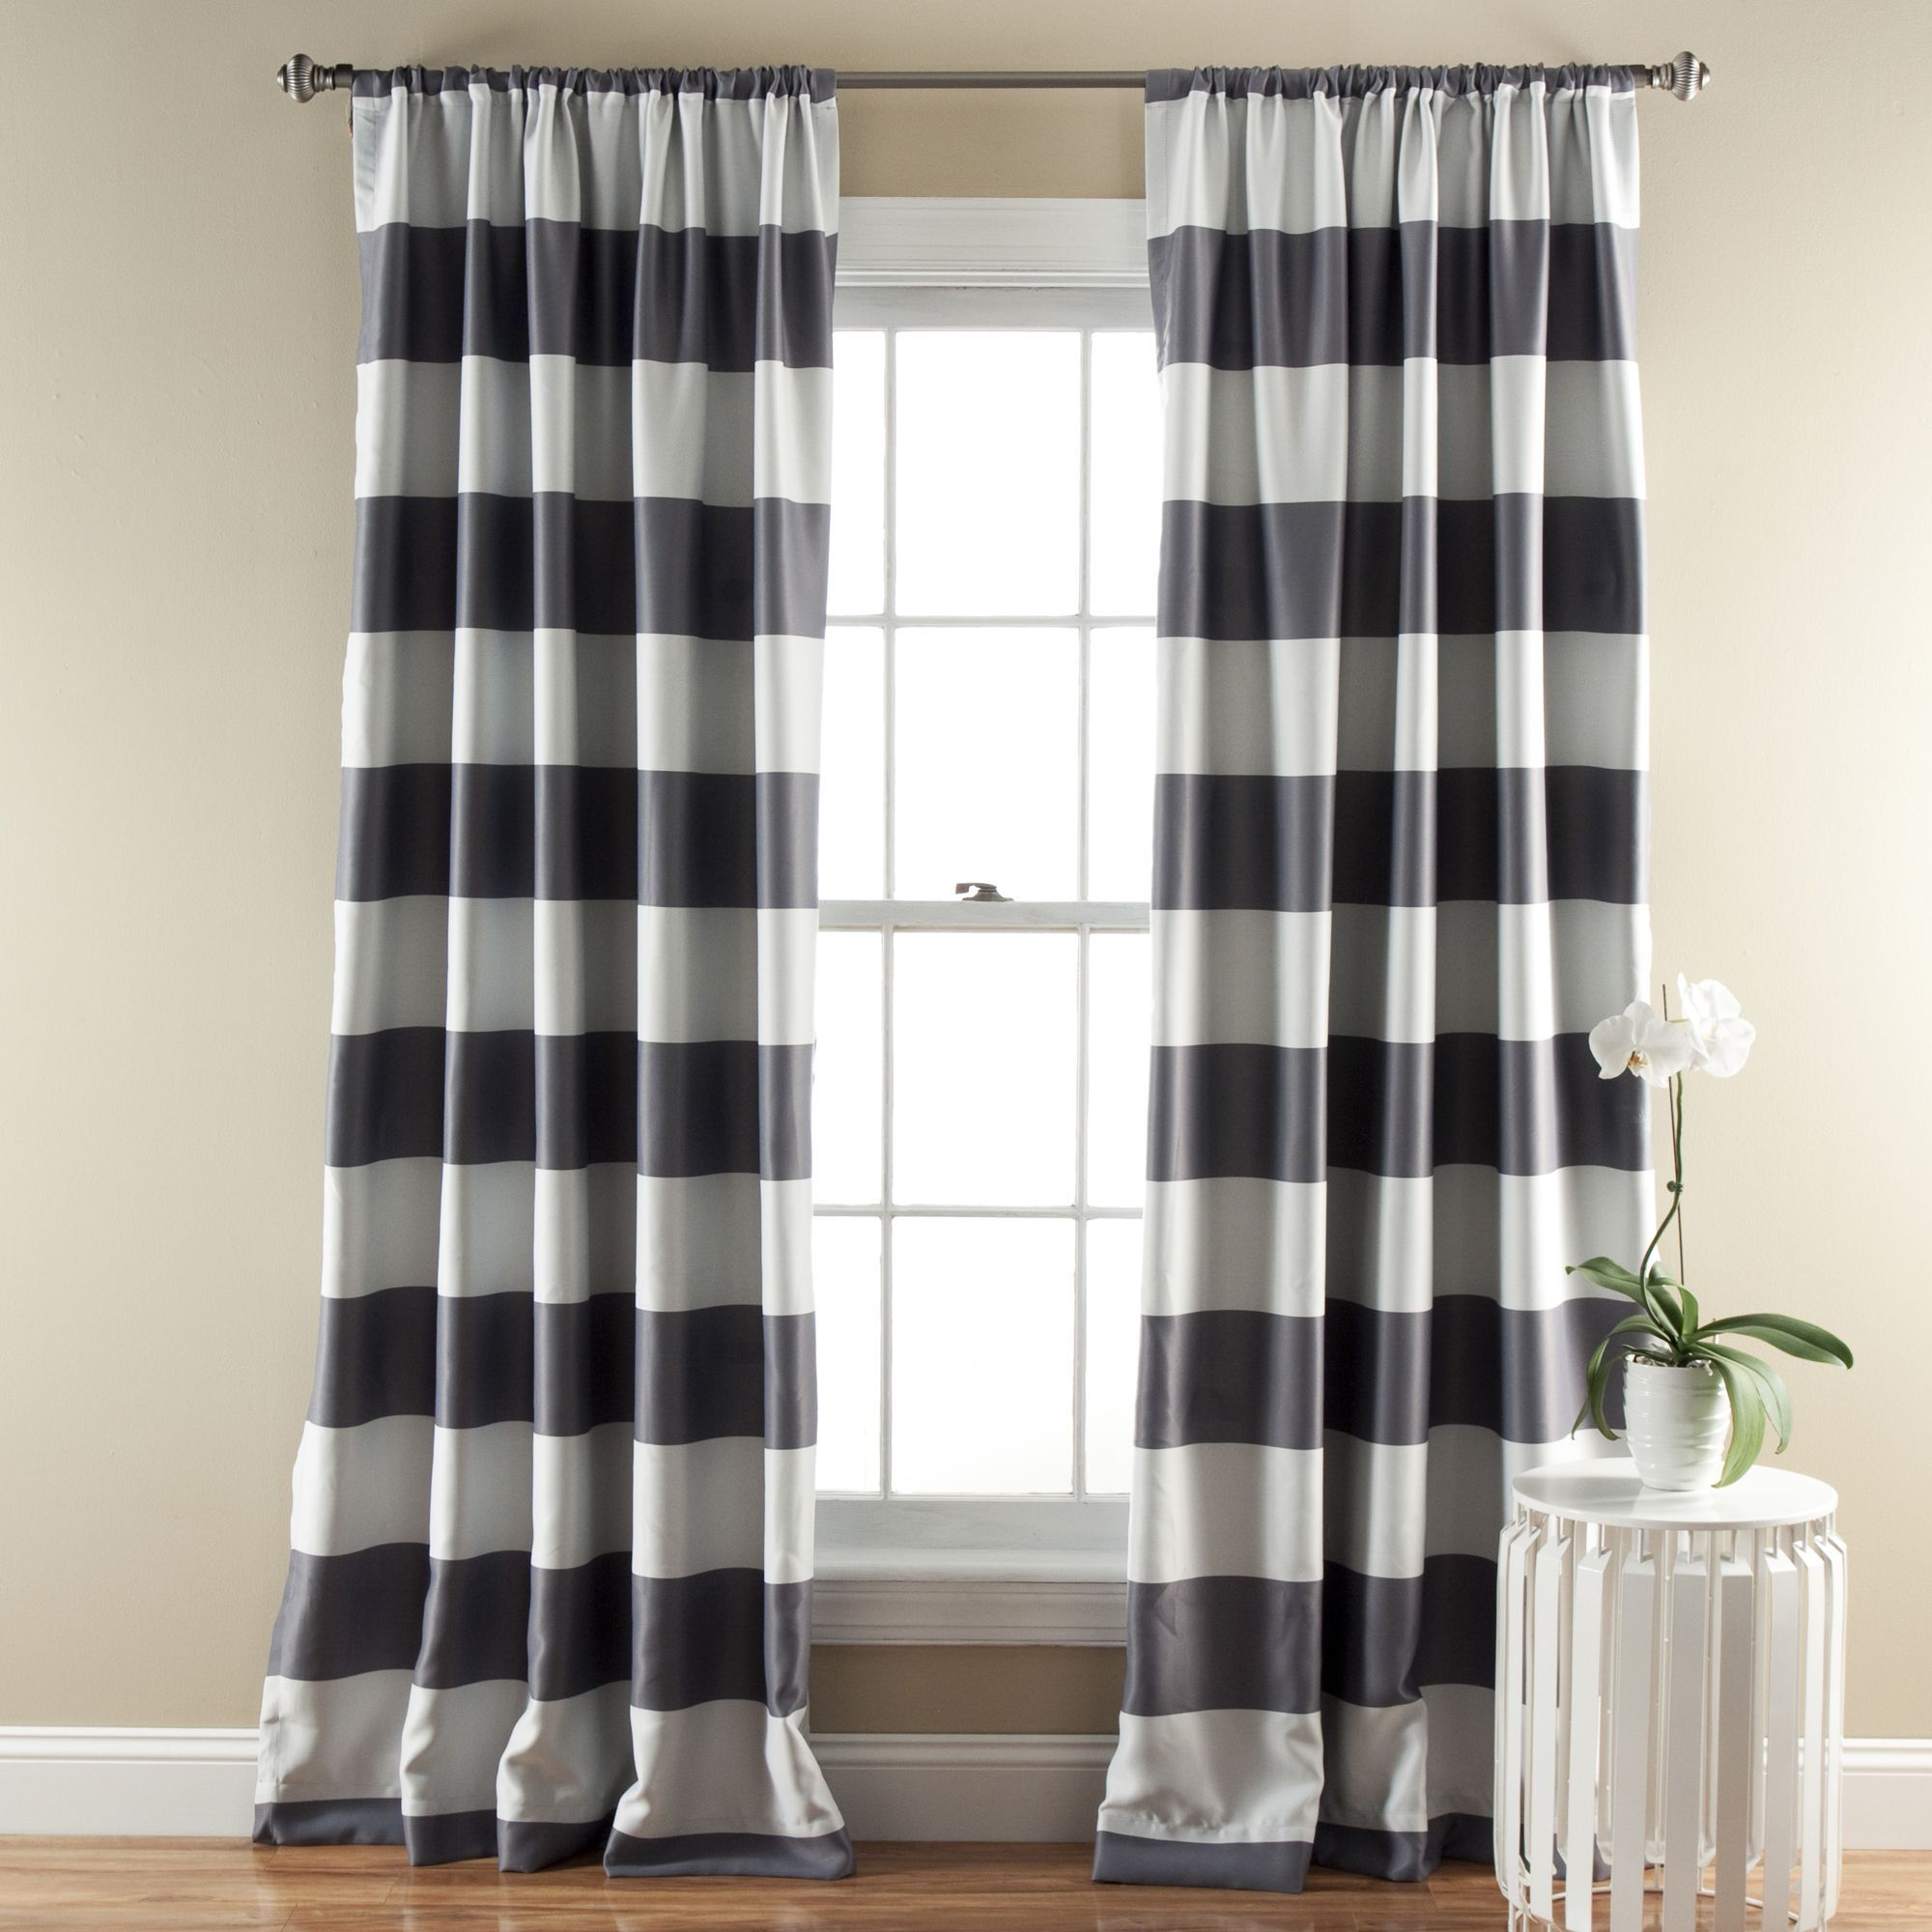 inside nautica green west shower graceful by sizing fabric end curtains curtain plaid x ravishing